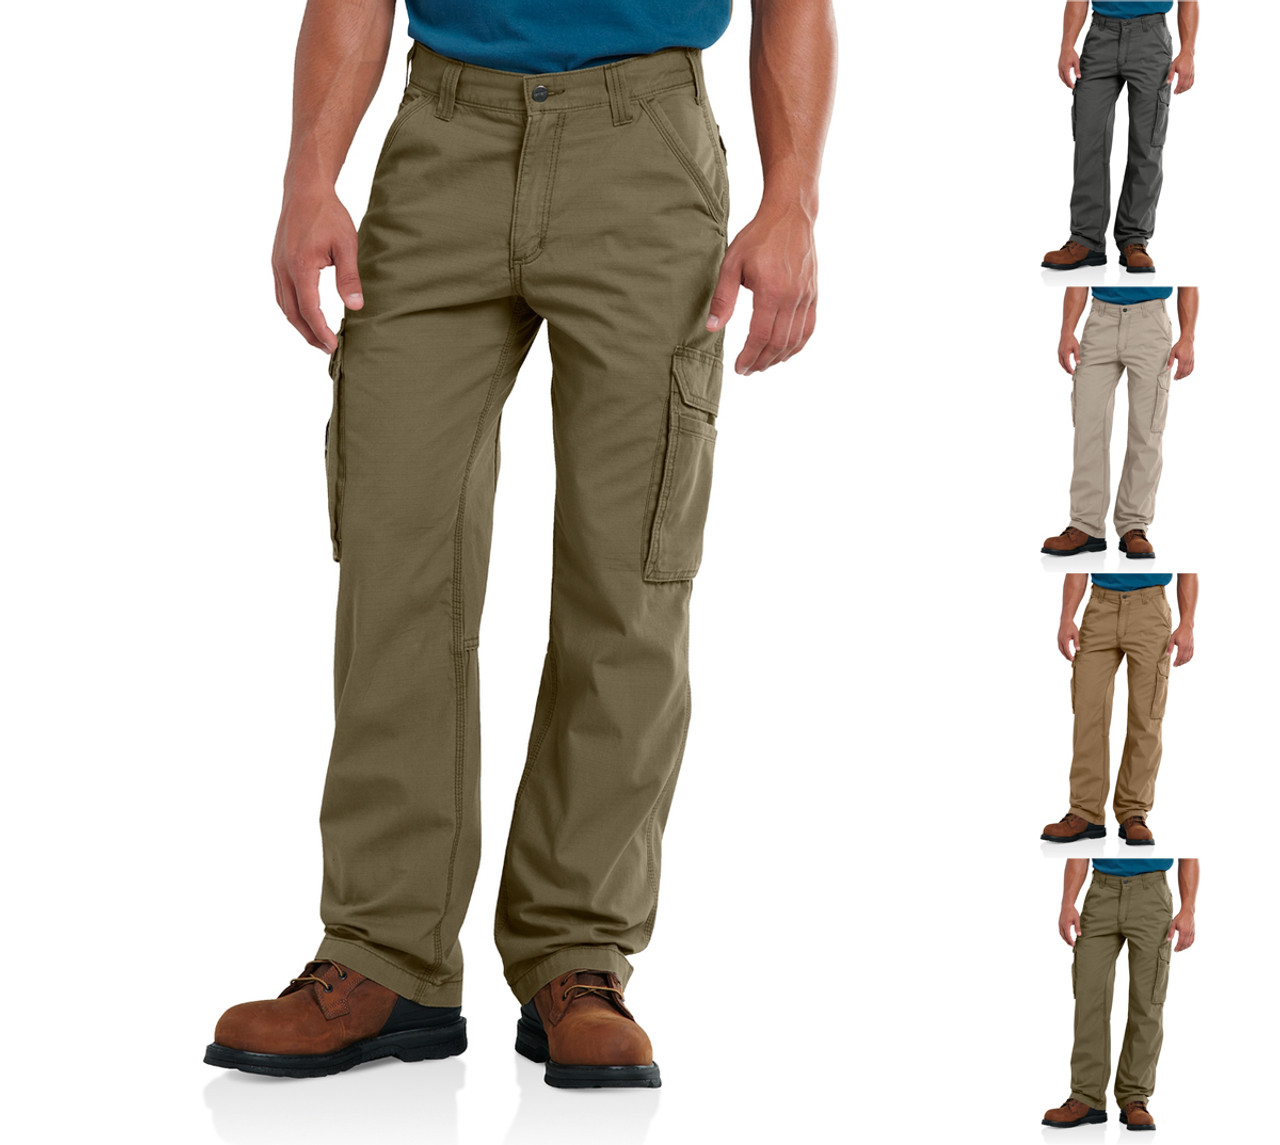 CARHARTT Men's FORCE Relaxed Fit Pants 40x30 Green